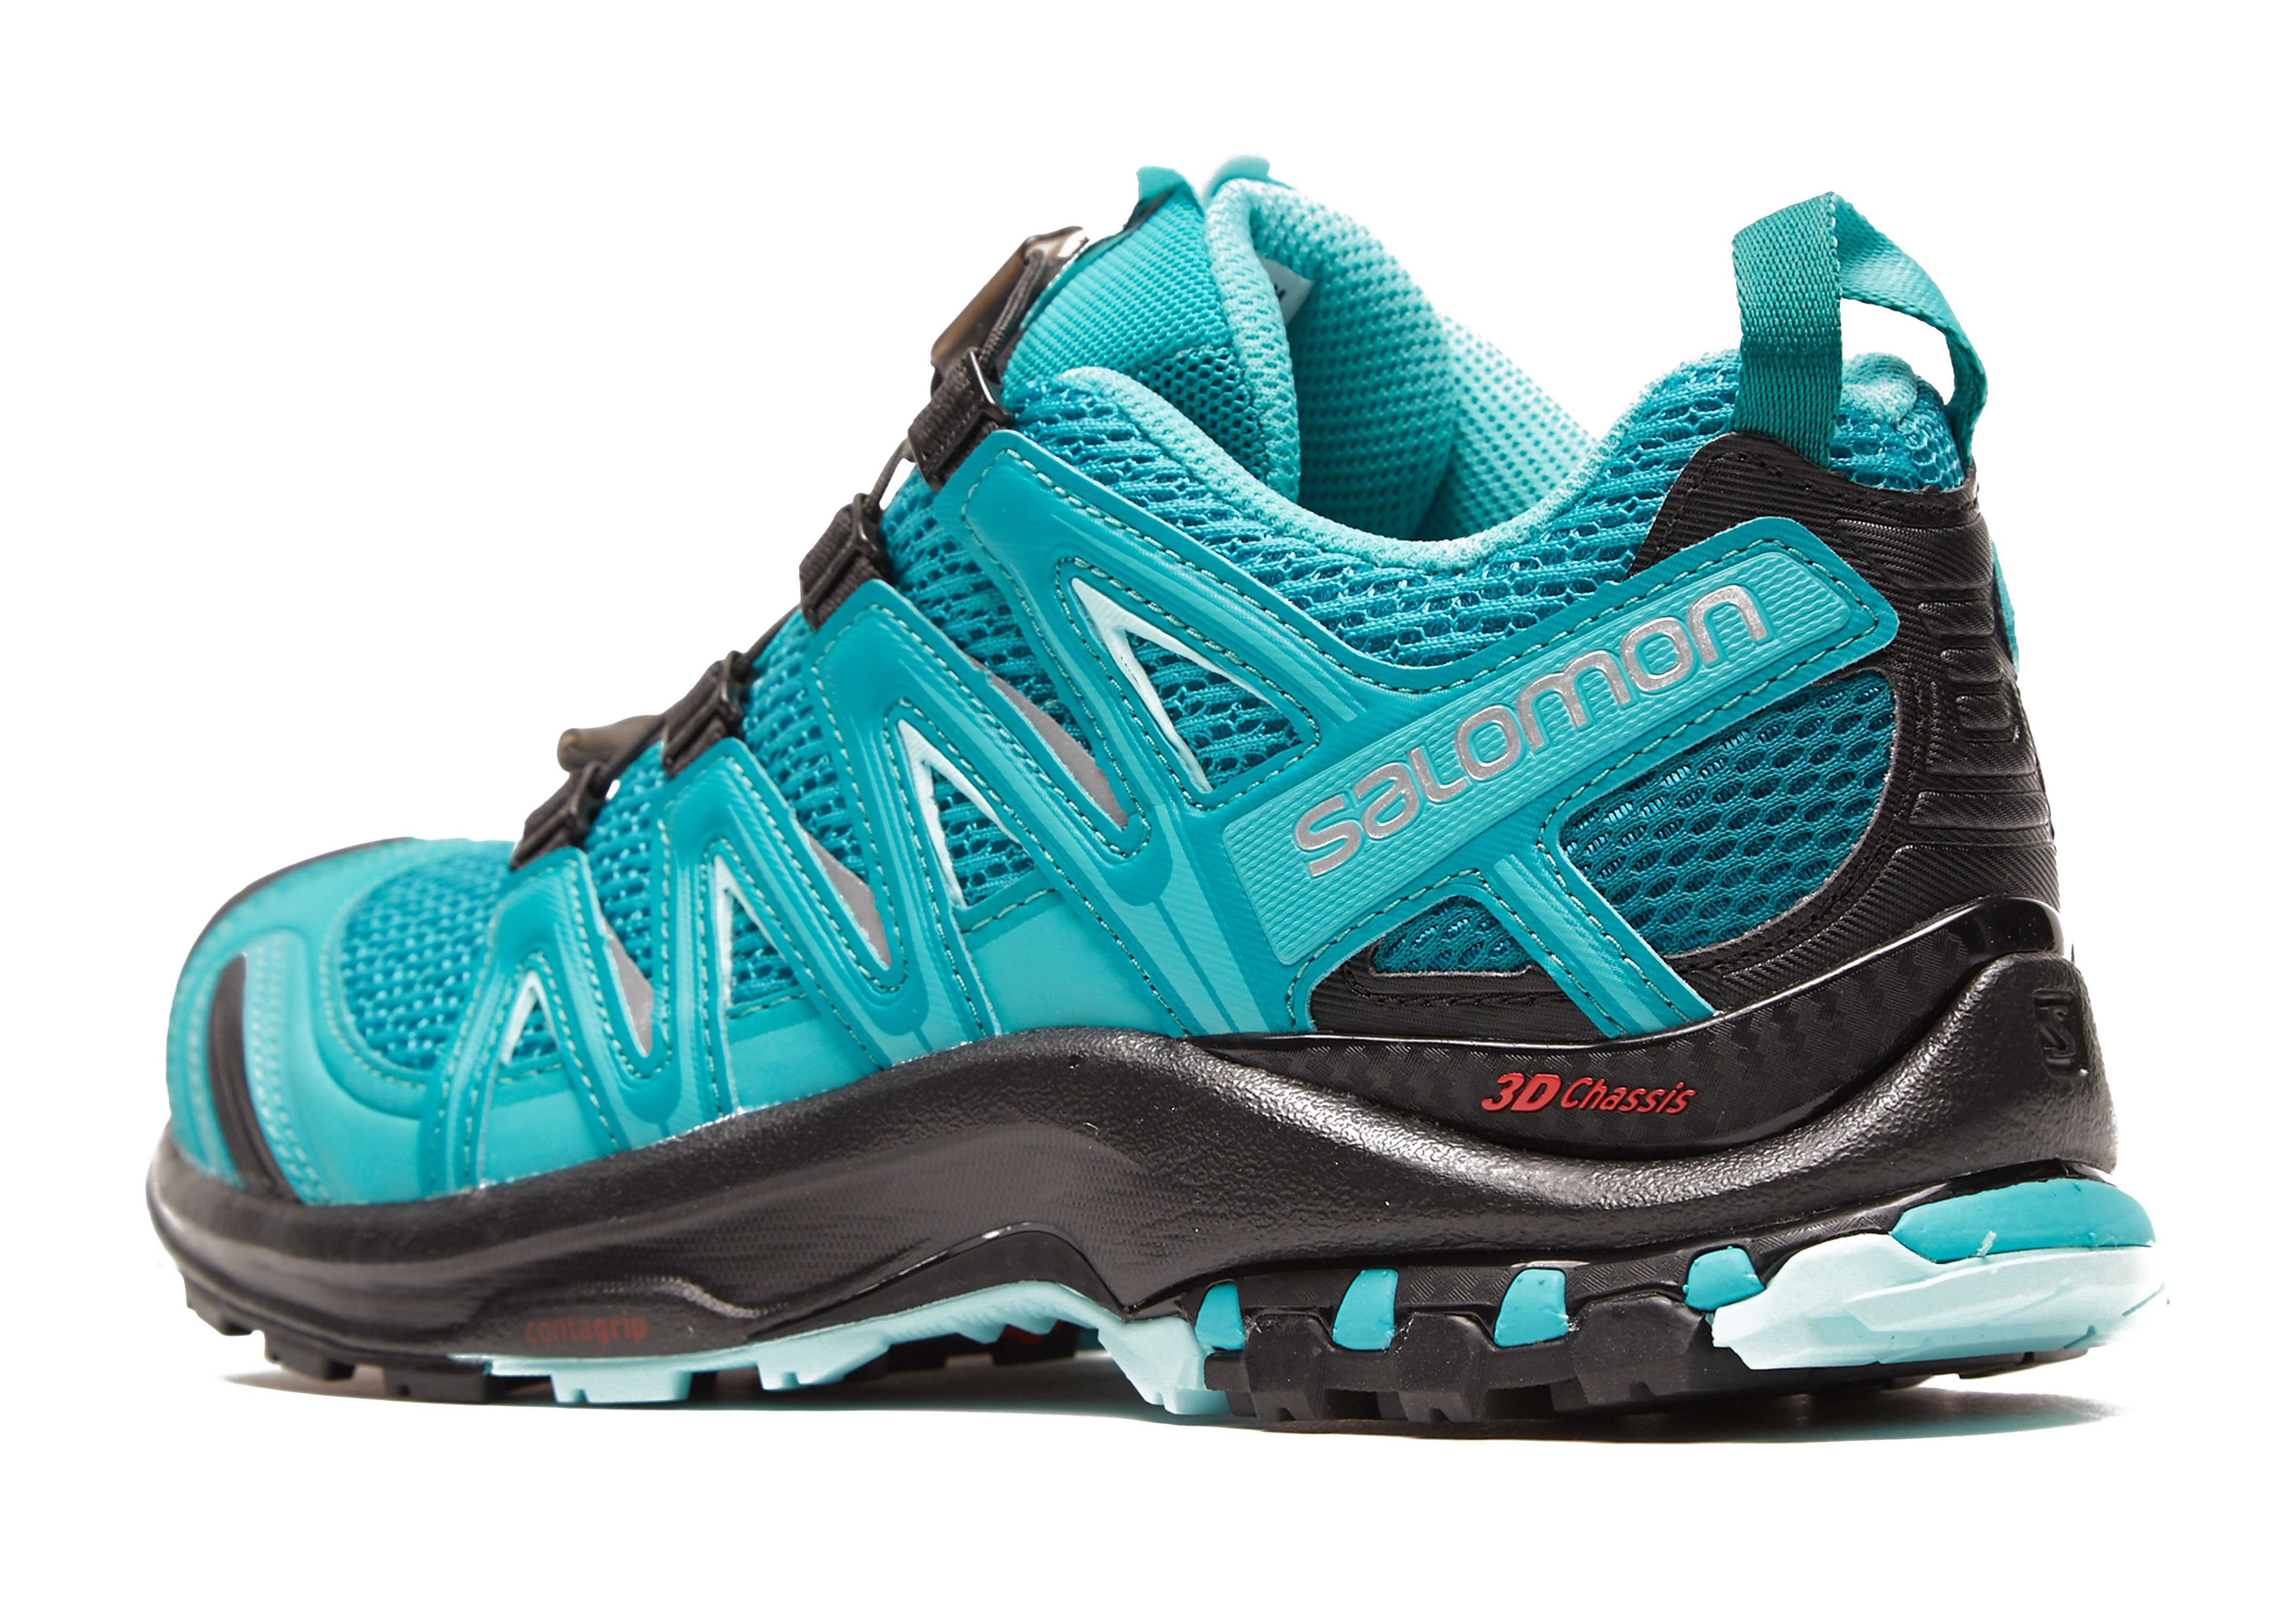 Salomon XA Pro 3D Trail Running Shoes Women's